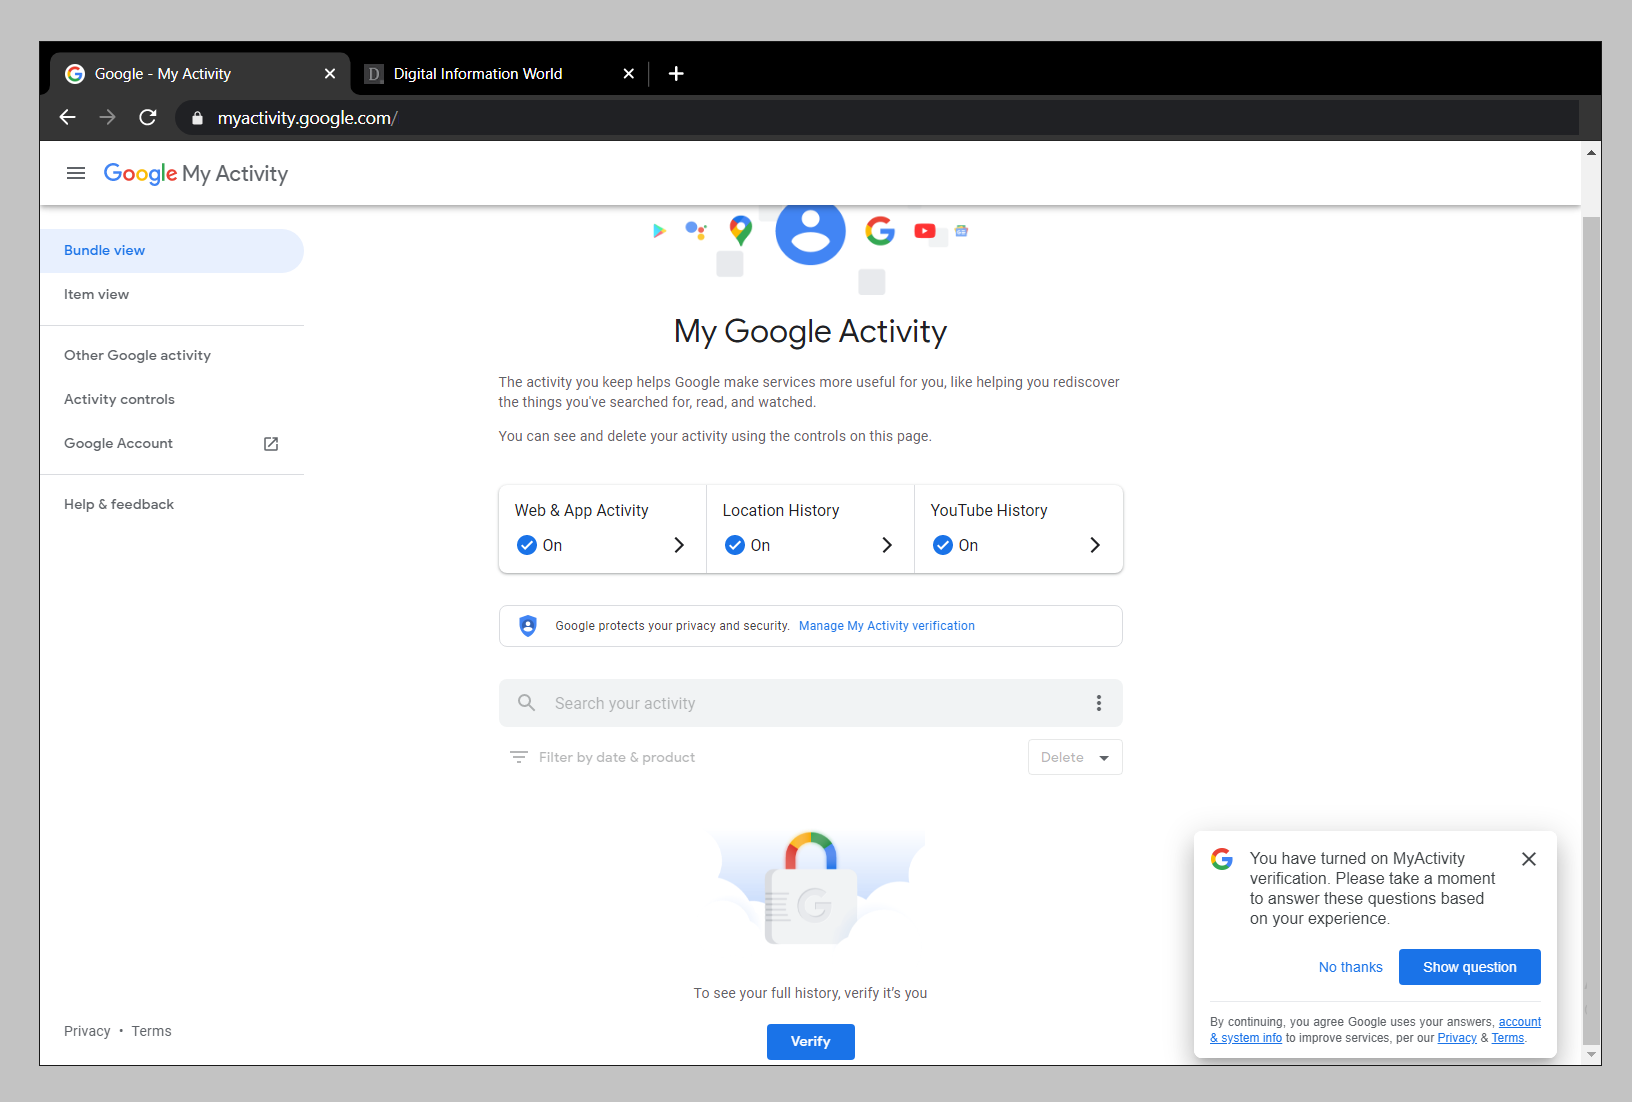 You Can Now Add A Password To Google's Web and Activity Page That Shows All Your Searches